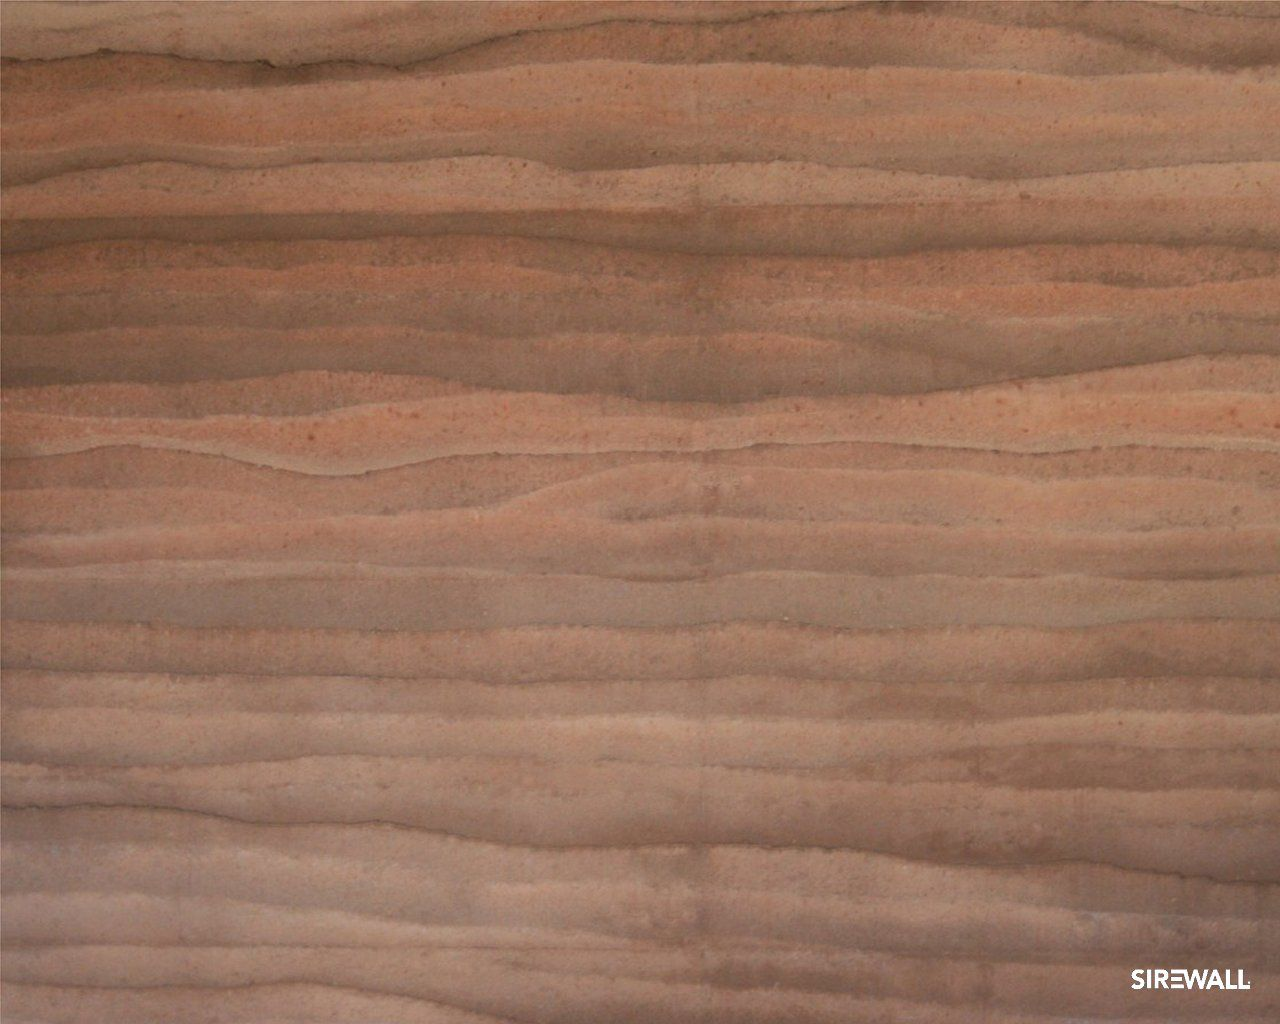 Rammed Earth Sirewall Rammed Earth Walls Architecture